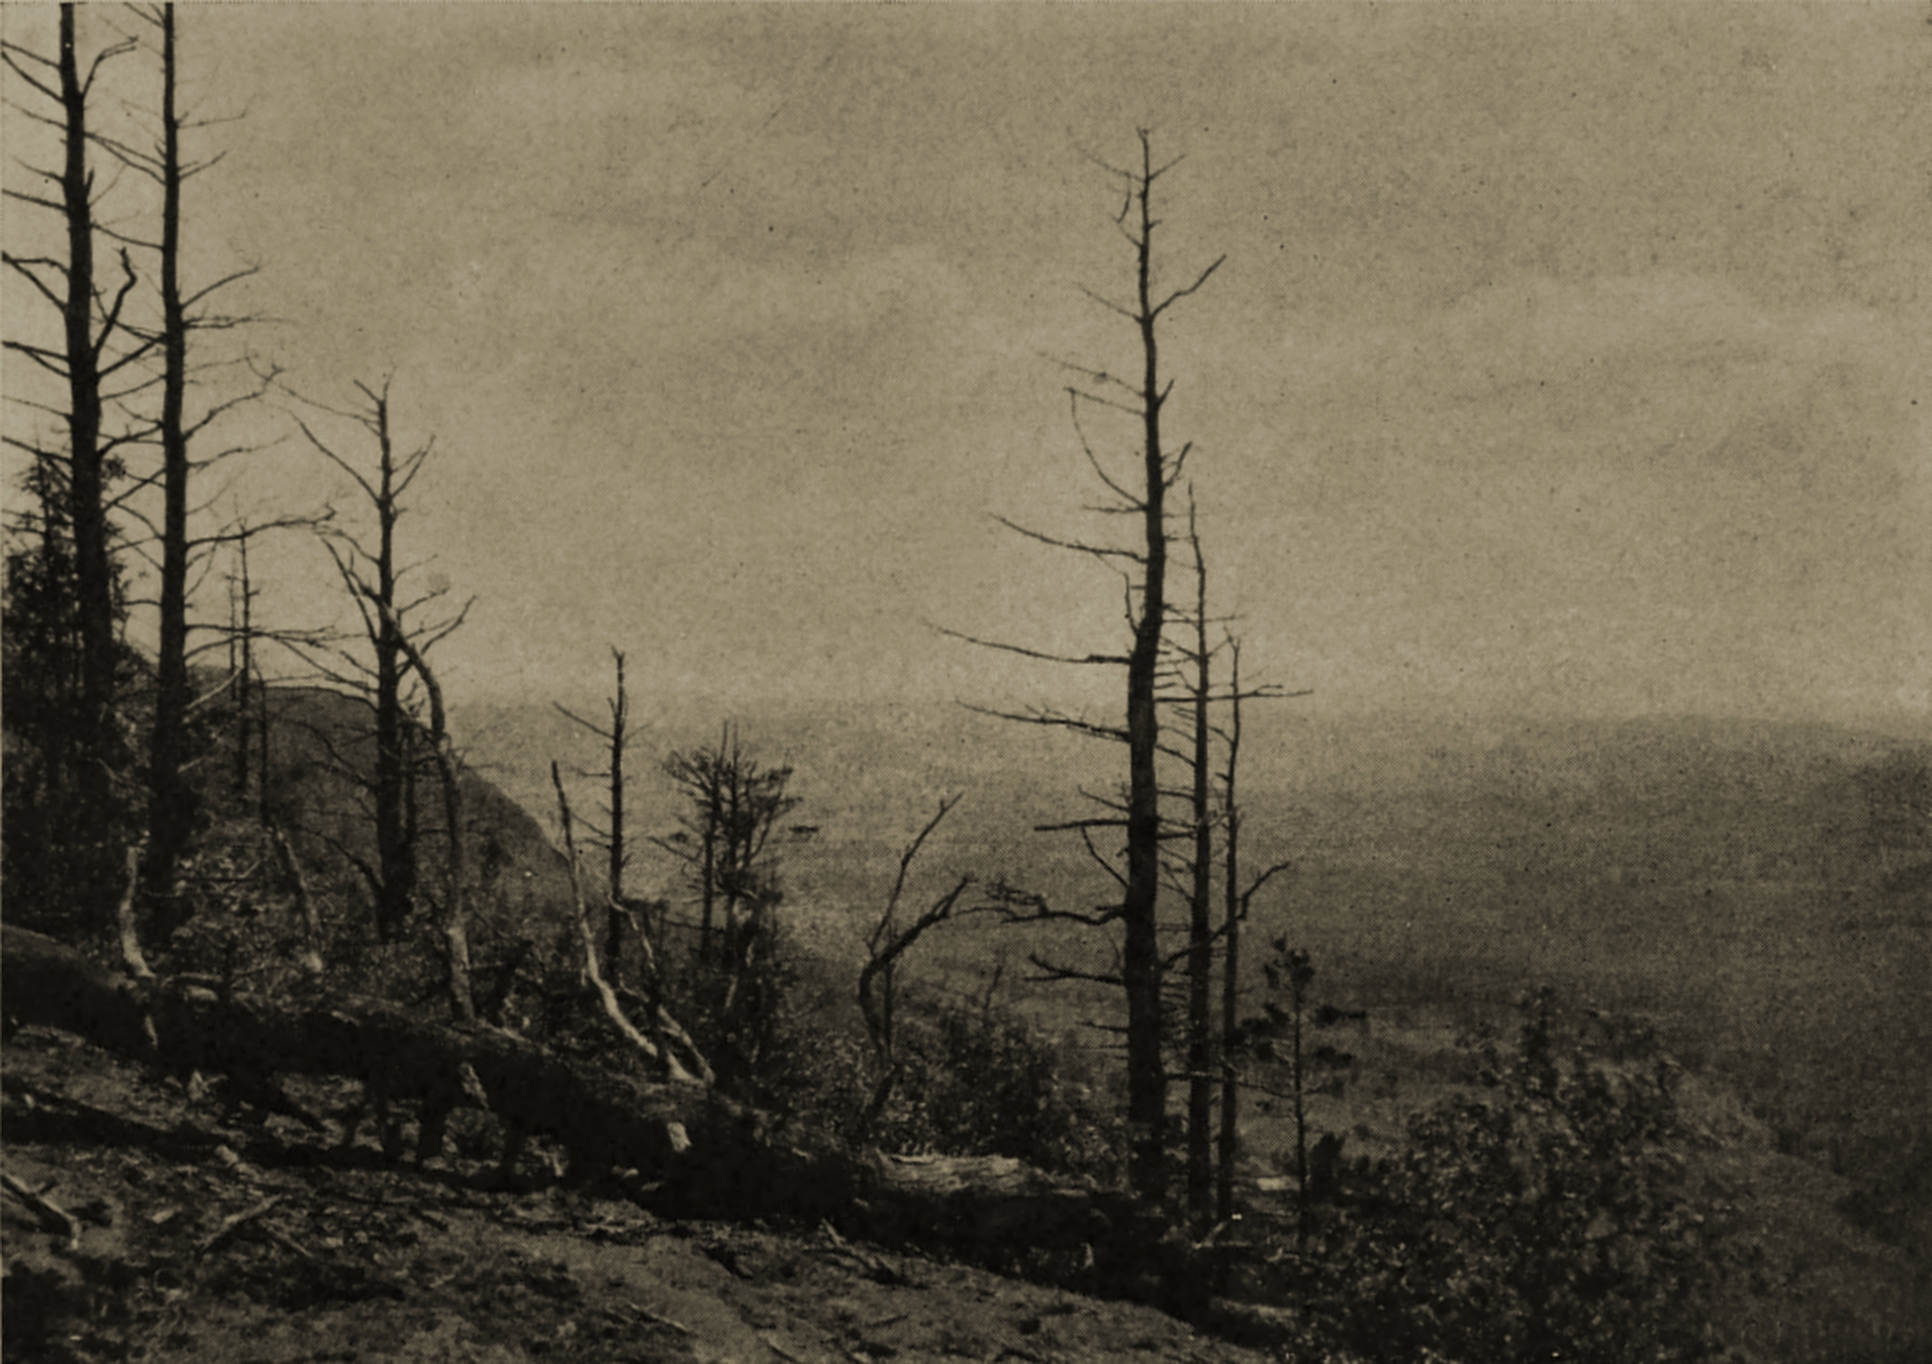 Canaan Mountain by E. G. Dunning about 1908